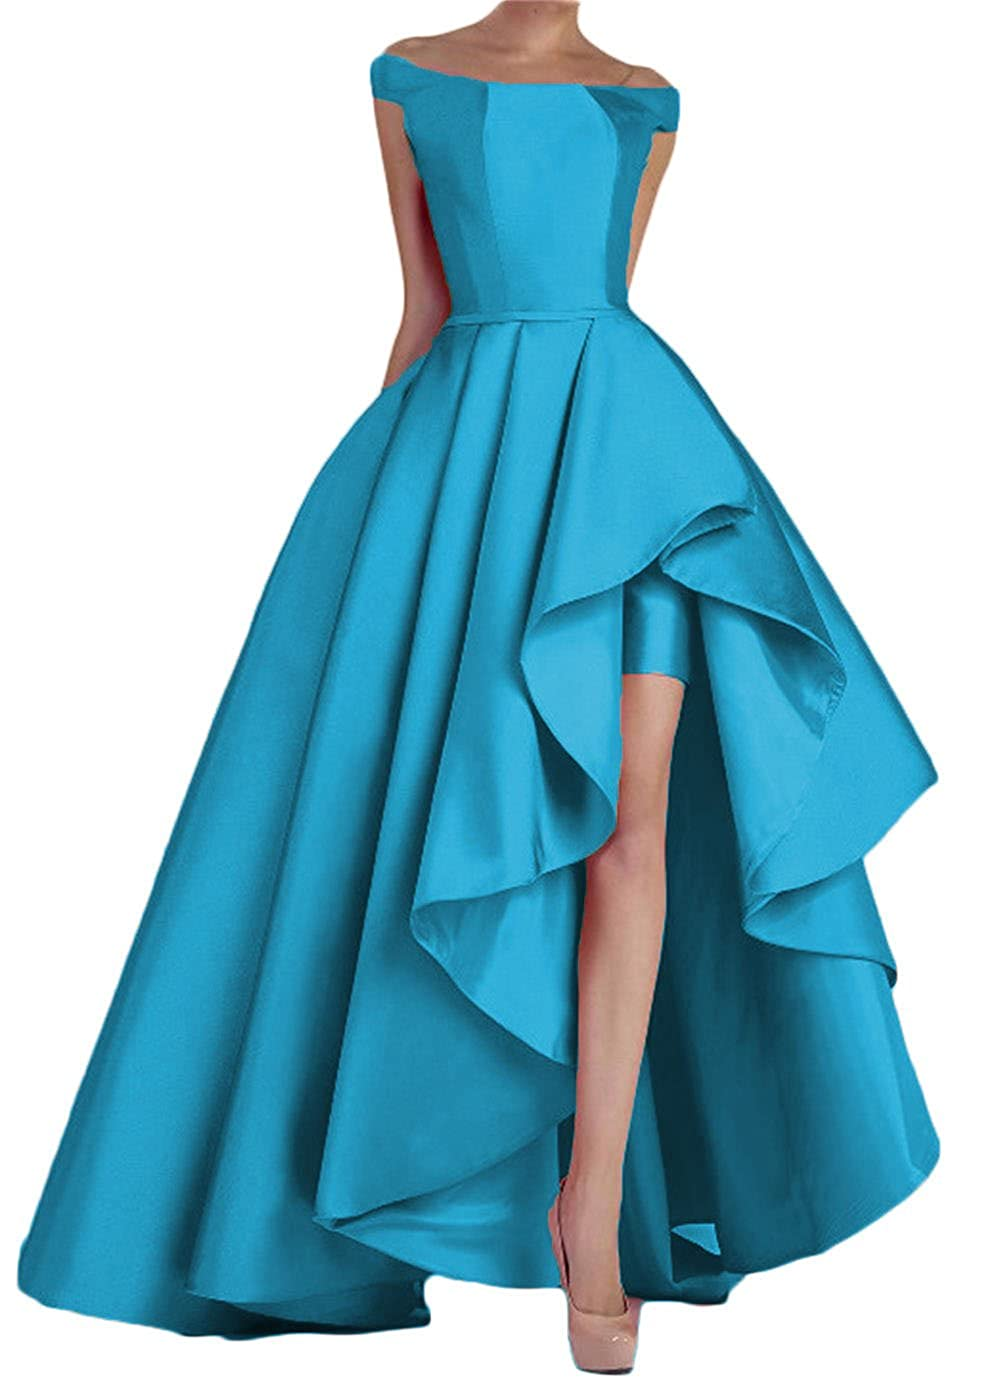 bluee Dydsz Women's Off Shoulder Long Evening Prom Dresses Plus Size Formal Gowns D22